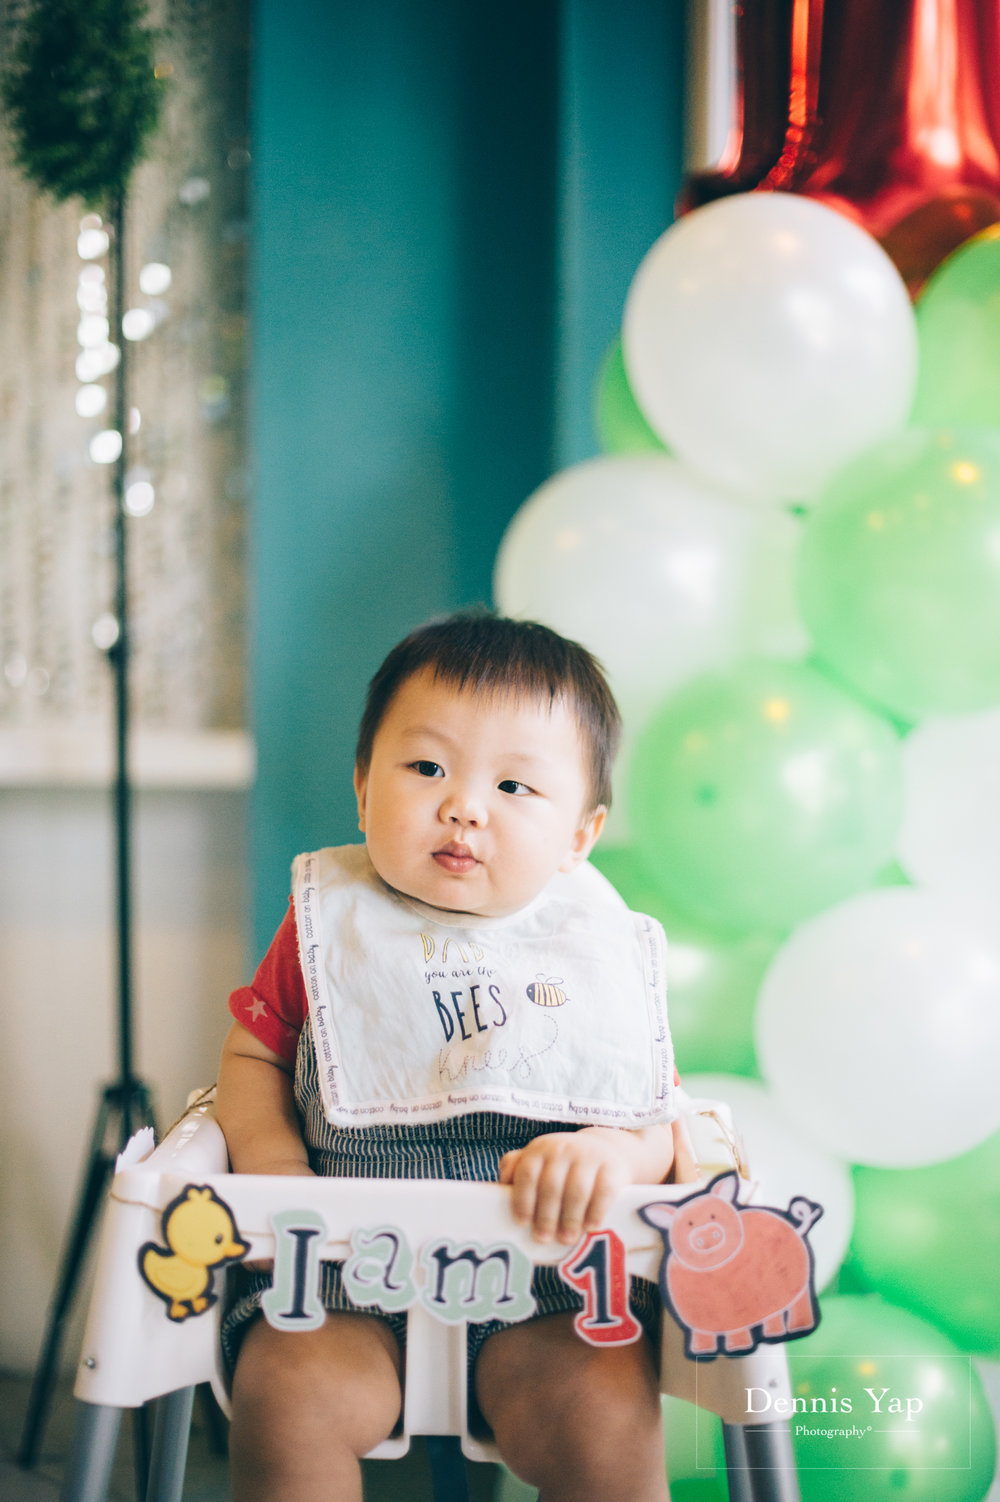 javen baby birthday party dennis yap photography cafe d fong-8.jpg